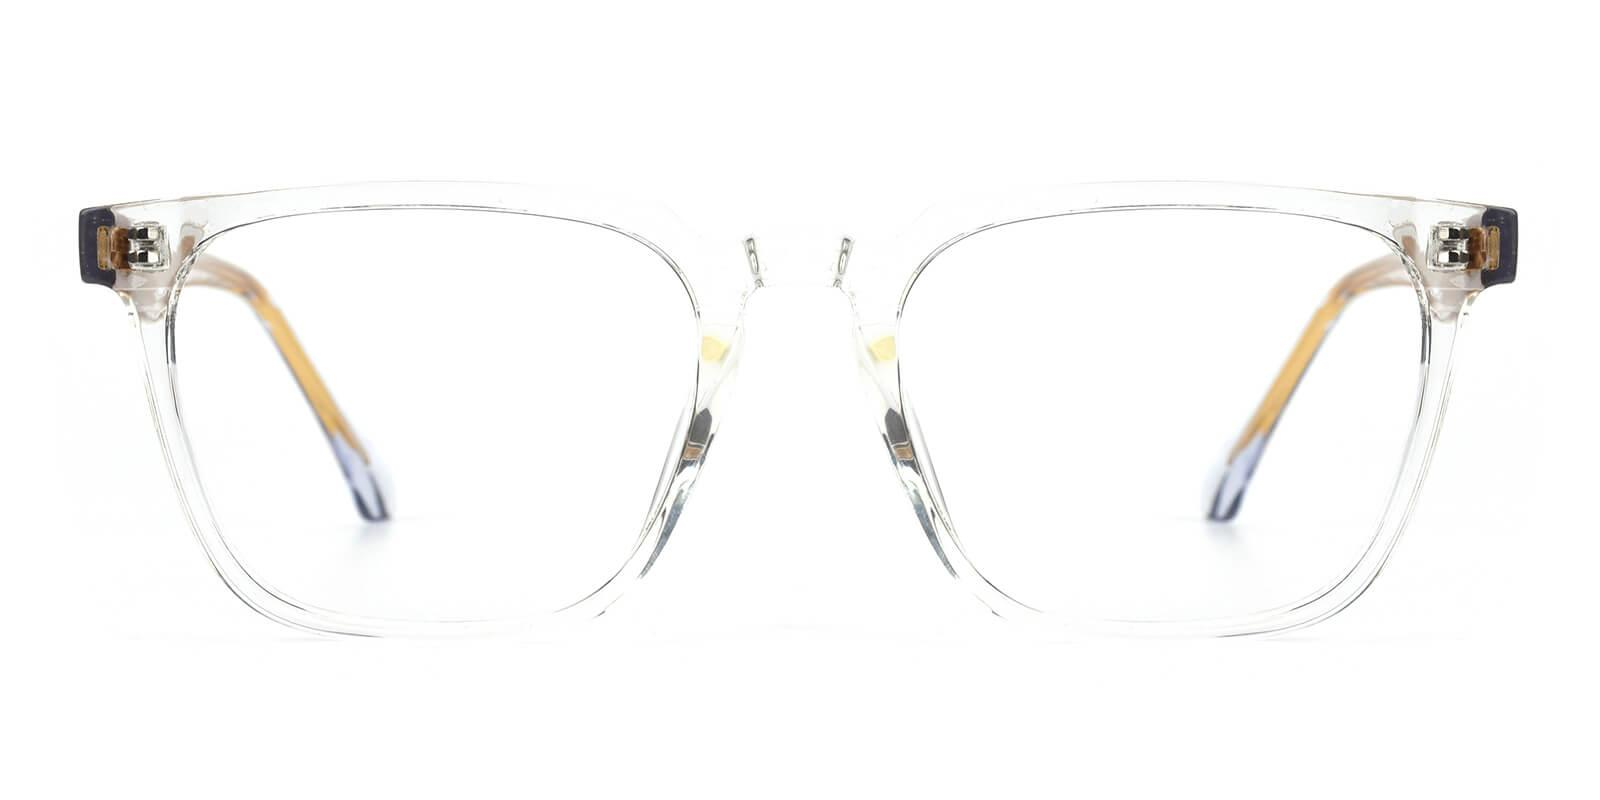 Gekay-Translucent-Square-Acetate-Eyeglasses-additional2